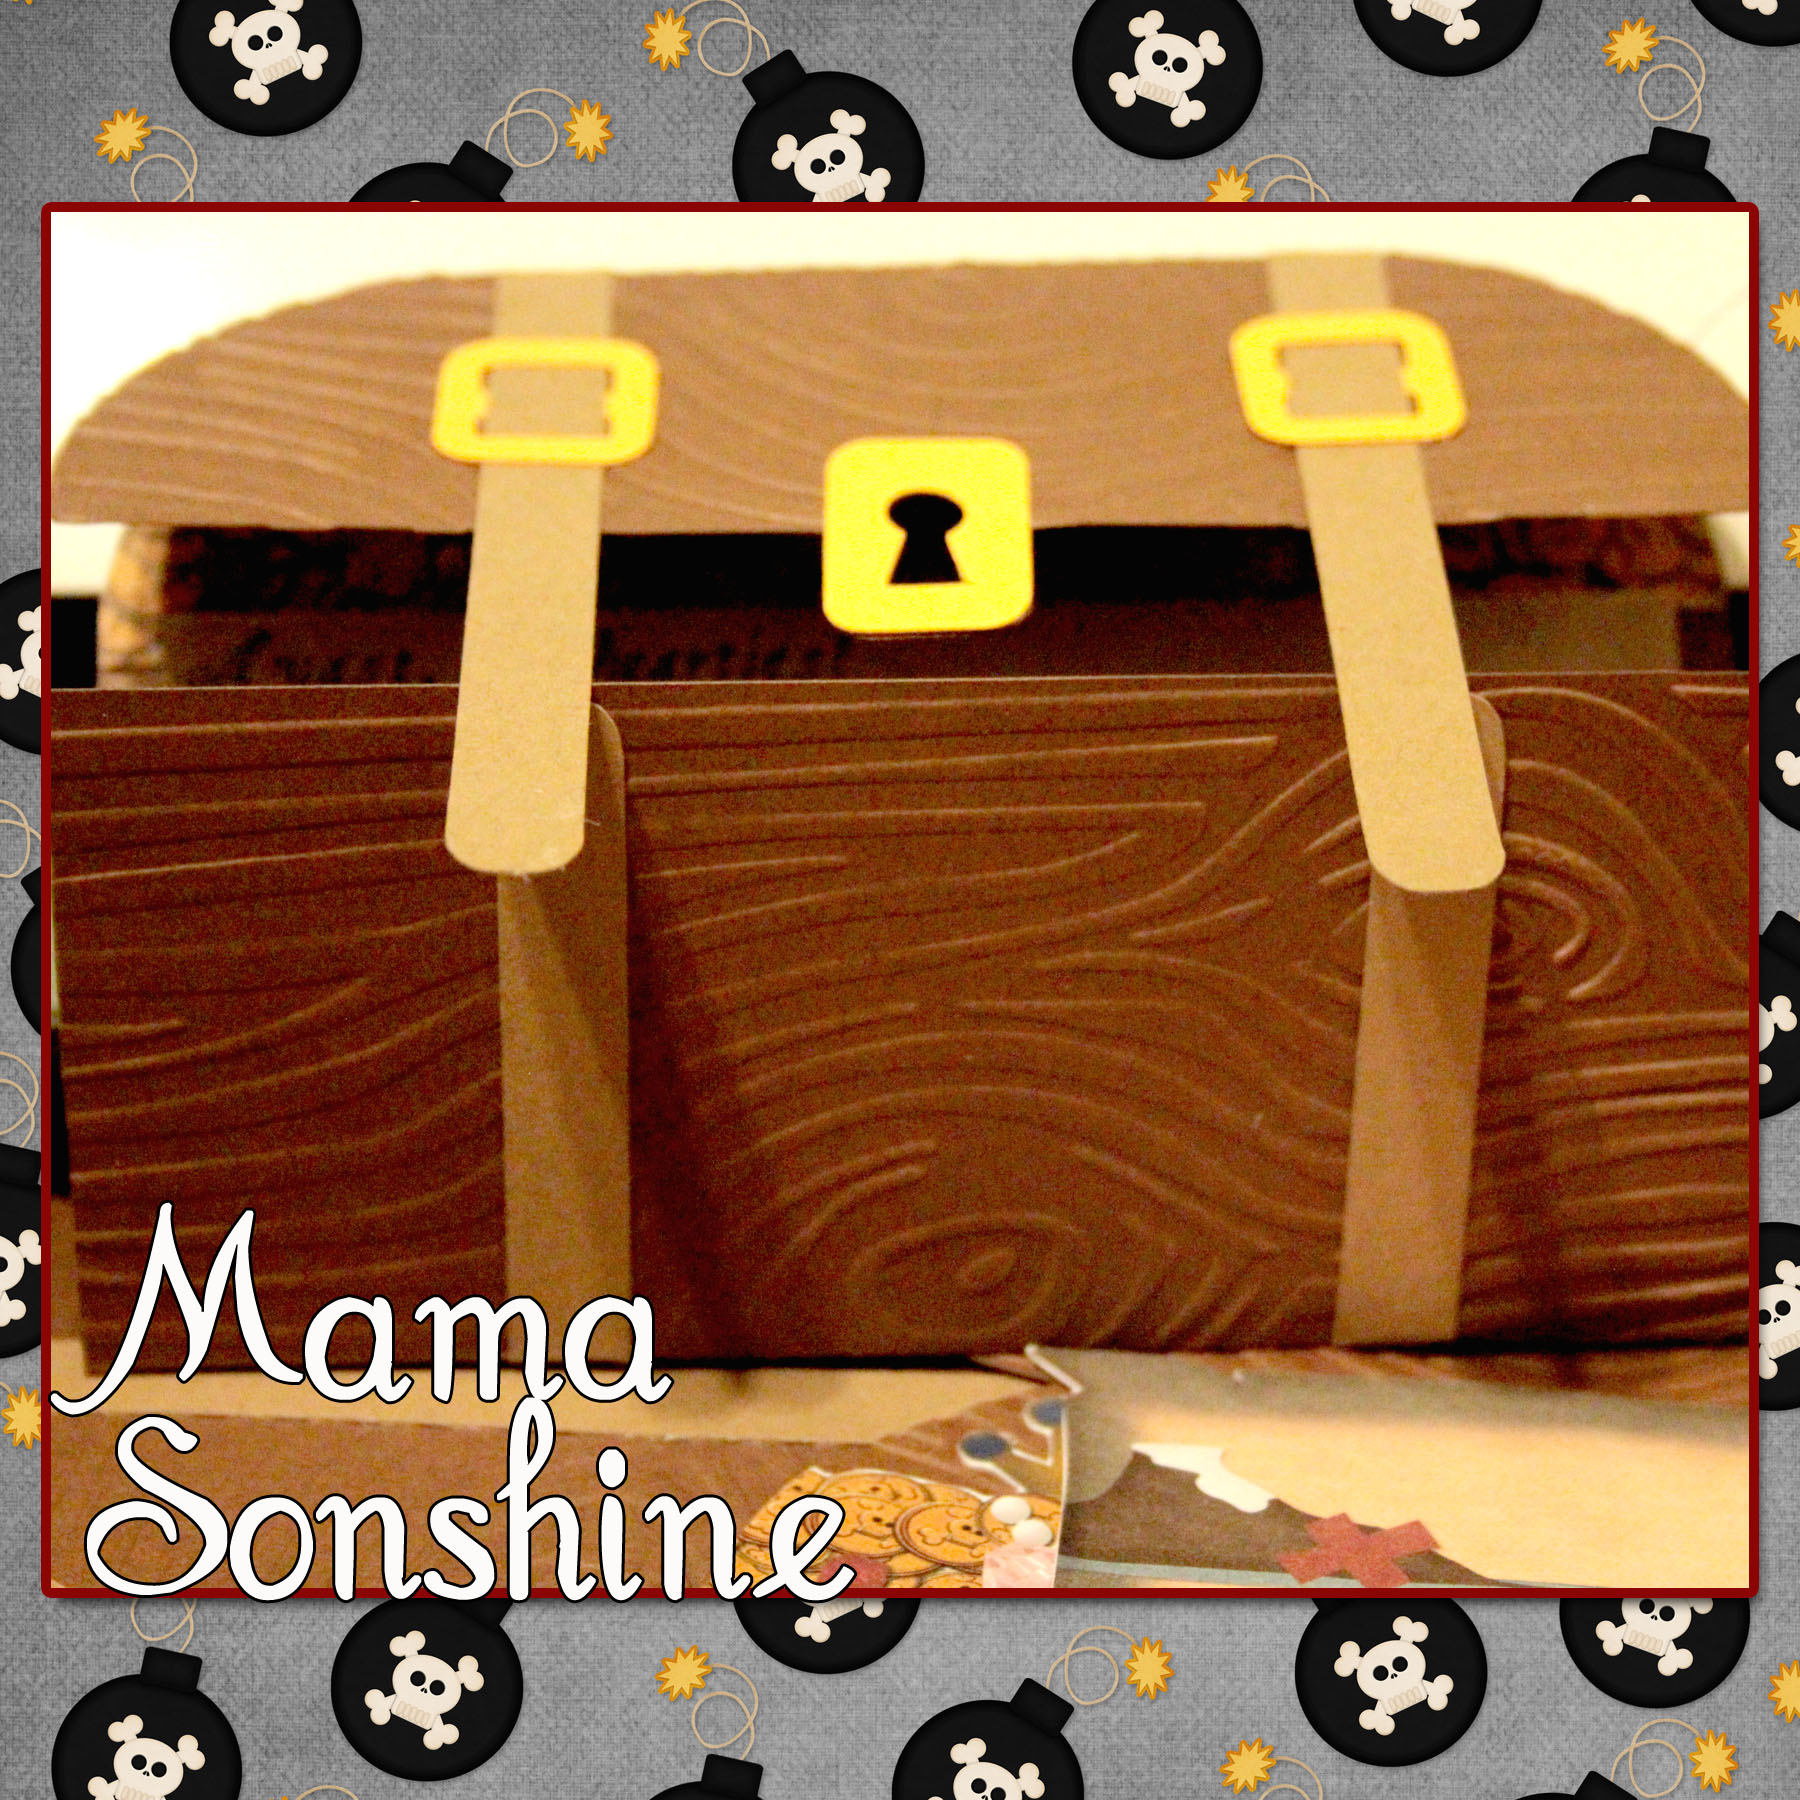 Treasure Chest Decorations Hand Made Decorations For A Pirate Party Mama Sonshine